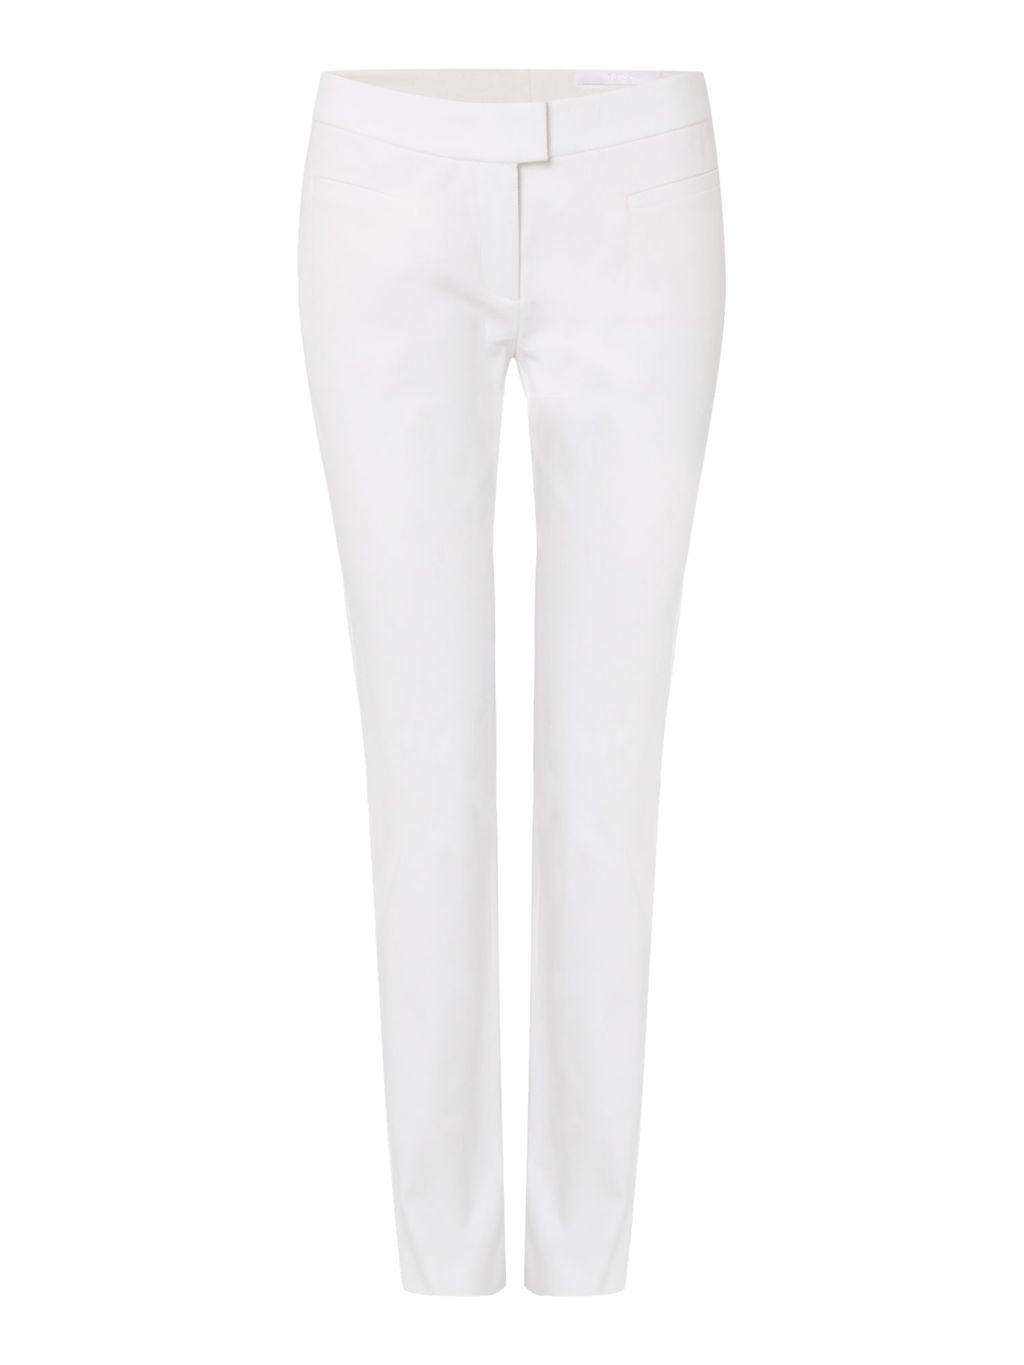 Arania Textured Cotton Slim Trouser, White - length: standard; pattern: plain; waist: mid/regular rise; predominant colour: white; occasions: casual, holiday, creative work; fibres: cotton - stretch; texture group: cotton feel fabrics; fit: slim leg; pattern type: fabric; style: standard; season: s/s 2016; wardrobe: basic